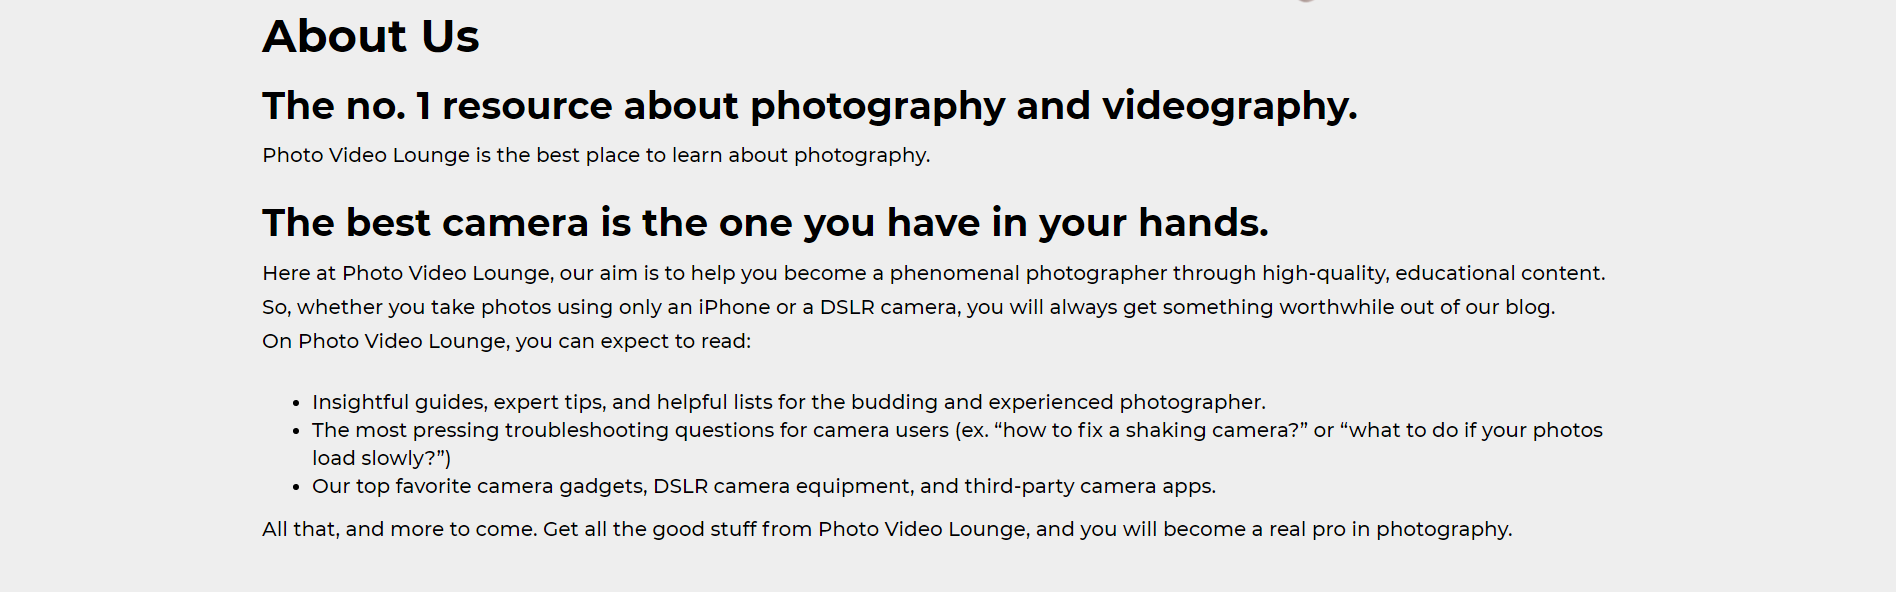 photo video lounge - about us